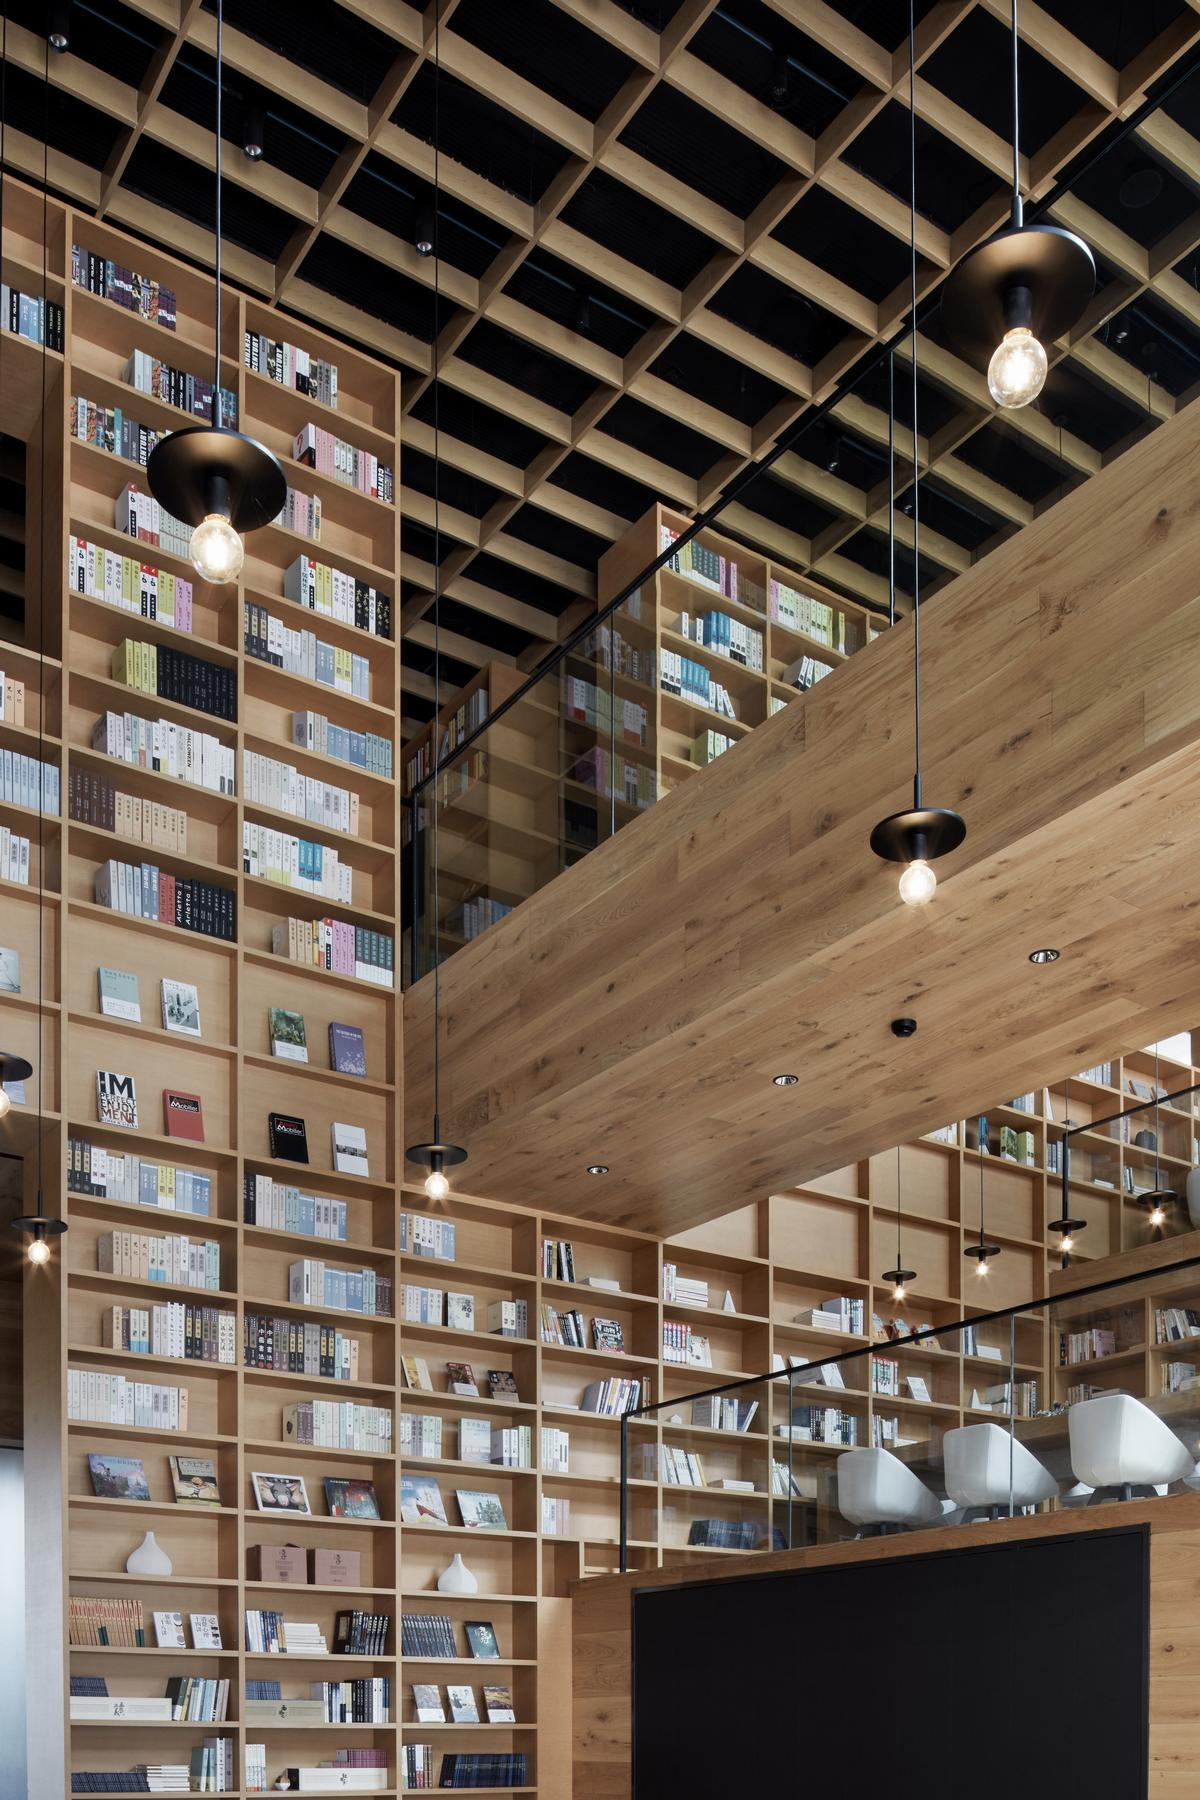 The bookshelf pattern is carried through to the ceiling in the space / Xiangyu Sun